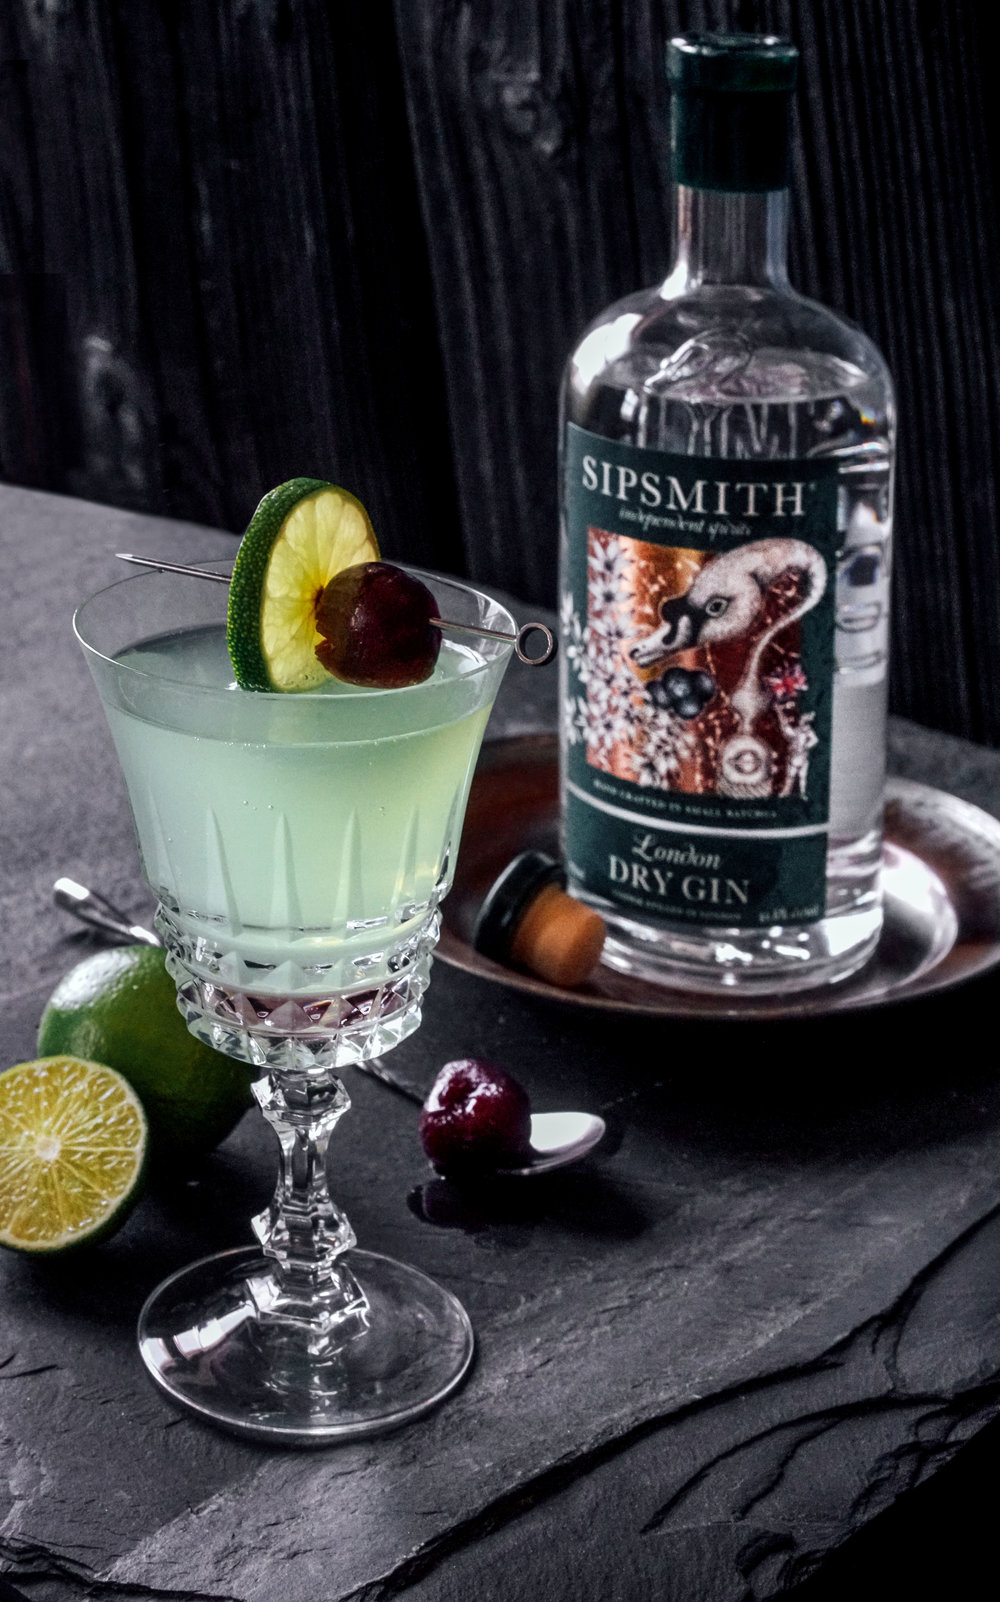 SipSmith_Product_ACOTC-1.jpg